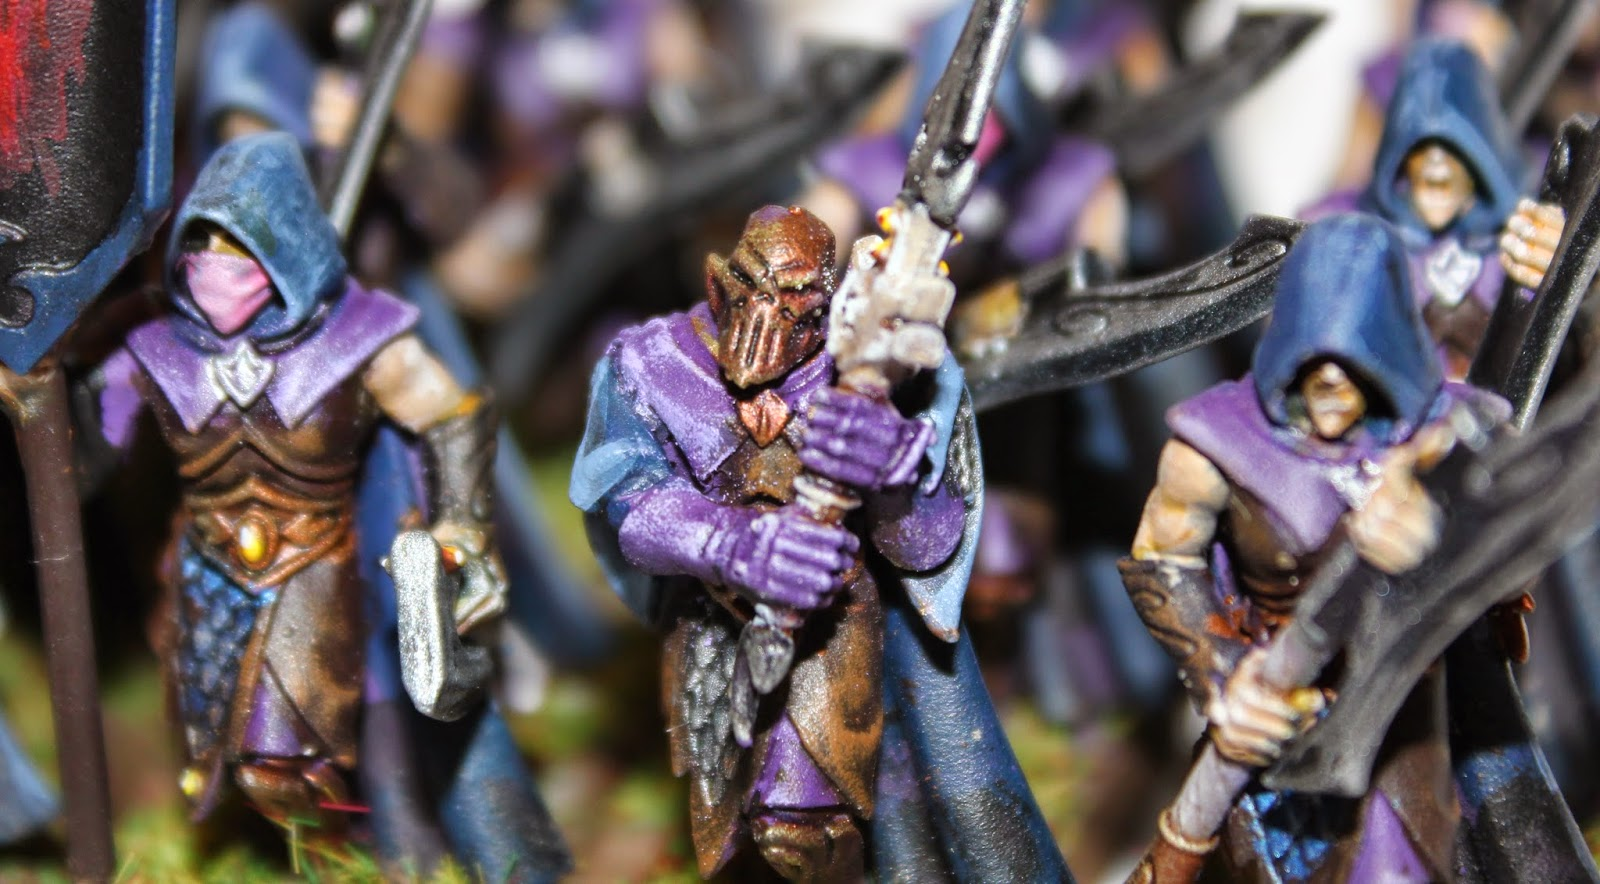 Painted Dark Elves